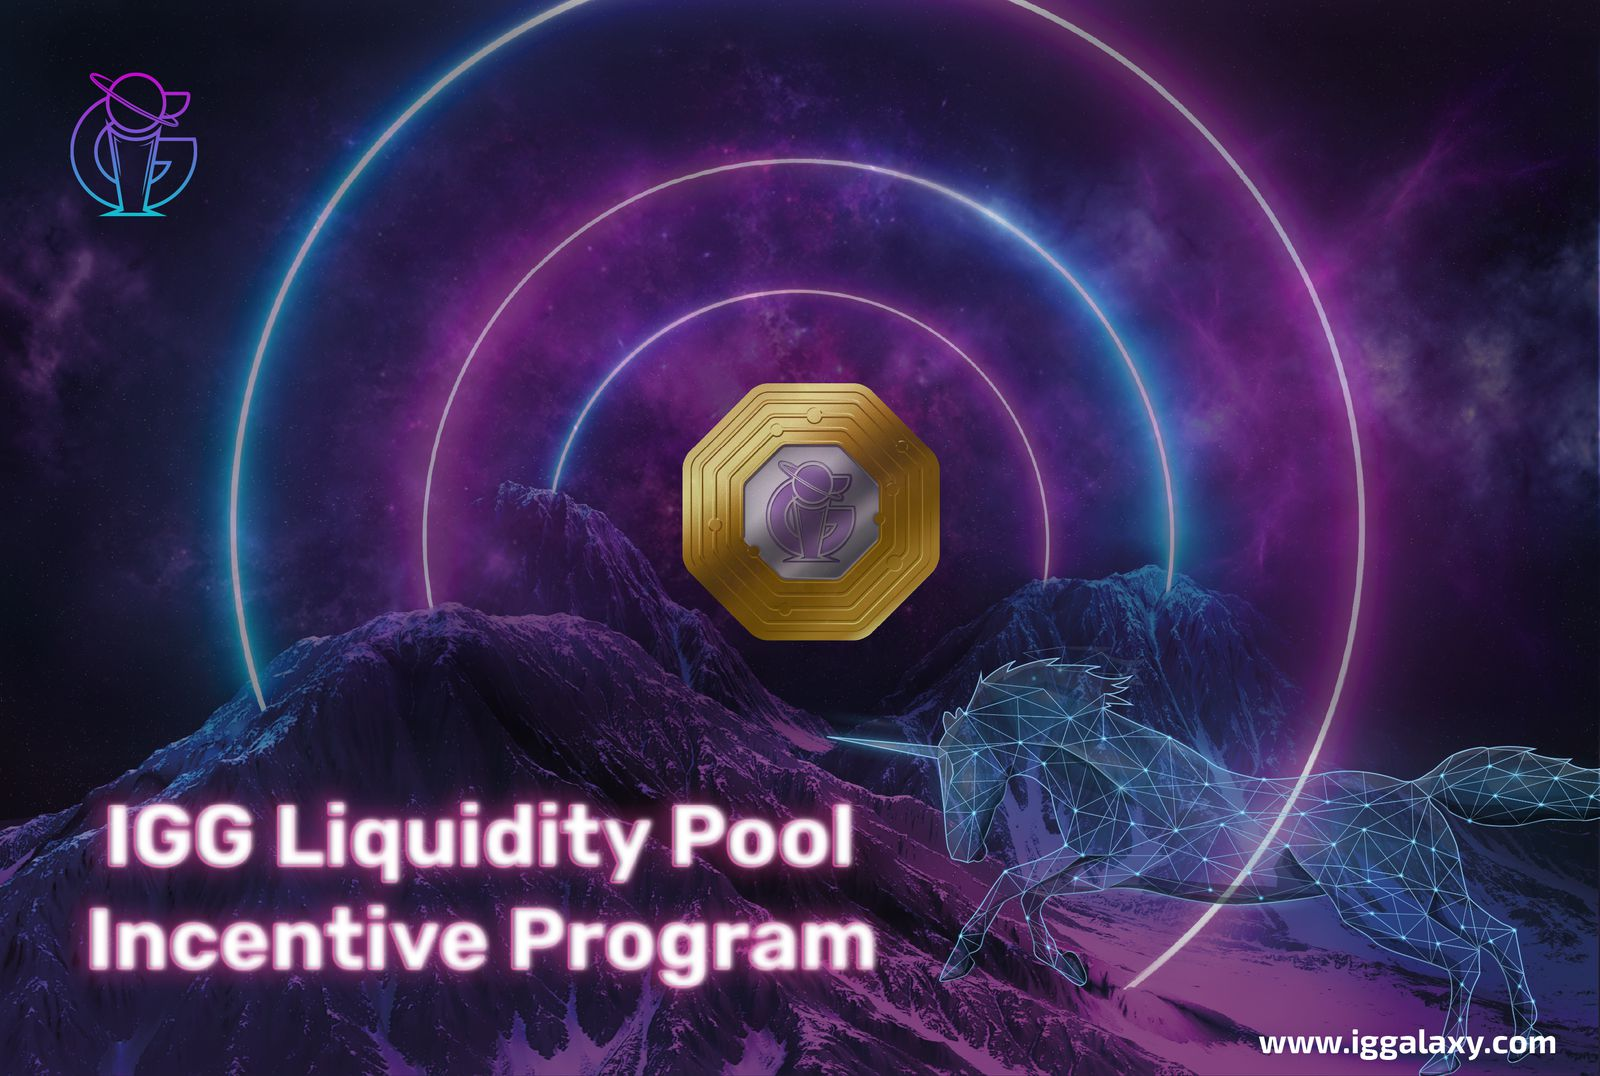 IGG/ETH UniSwap Liquidity Rewards Period Details: 19 - 29 November